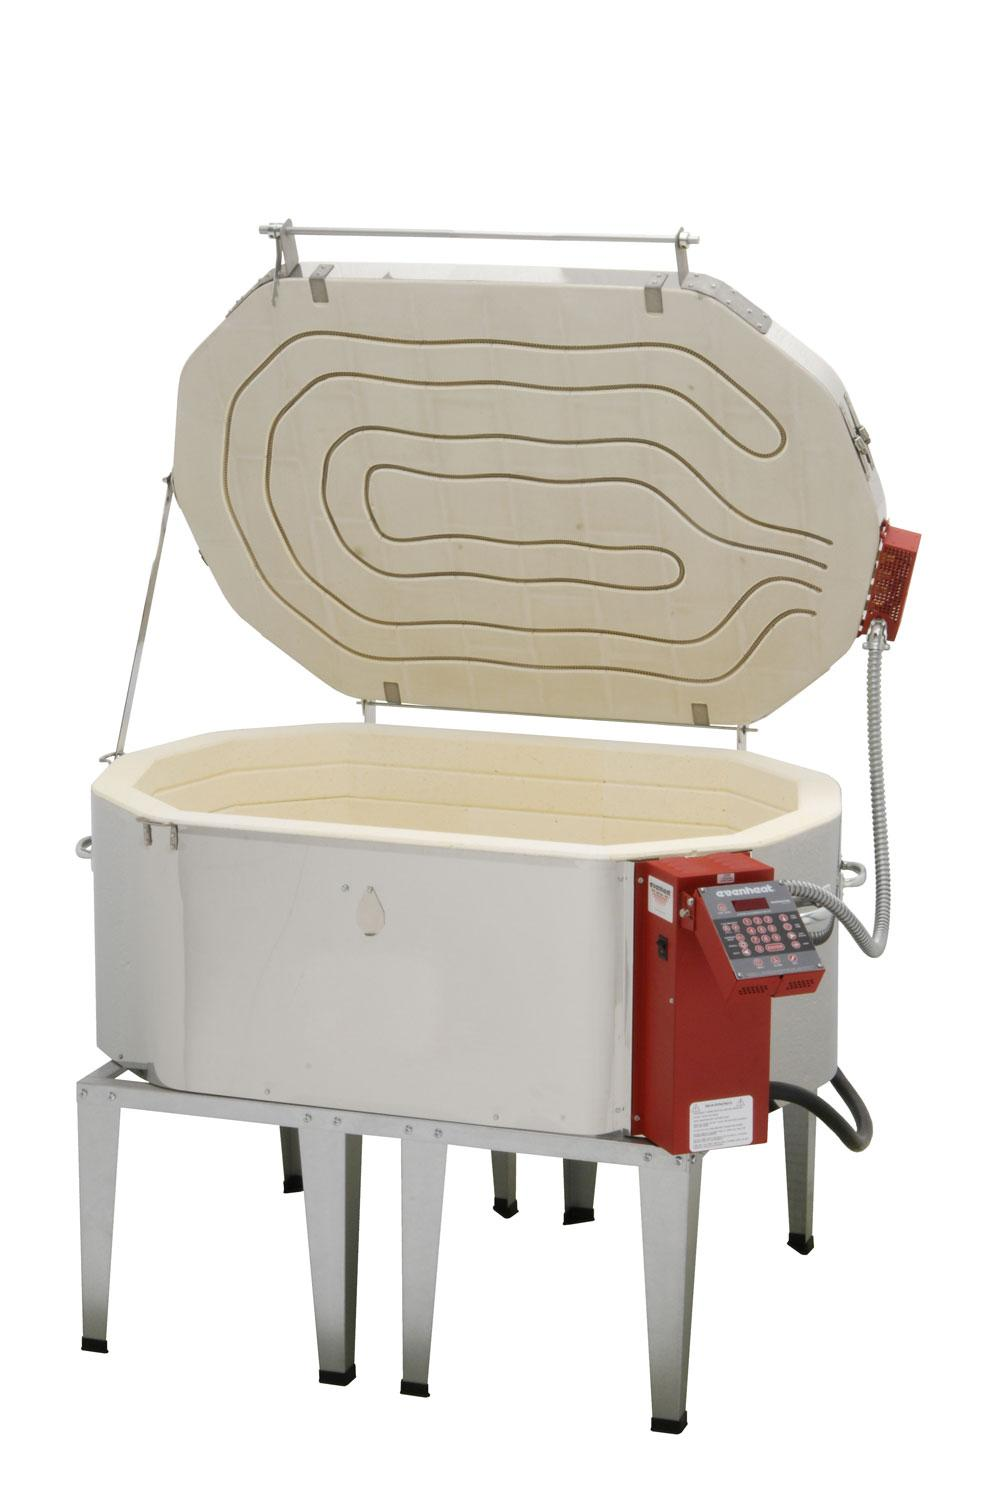 GTS 2541-13 25 Floor Kiln with RampMaster with Express Mode